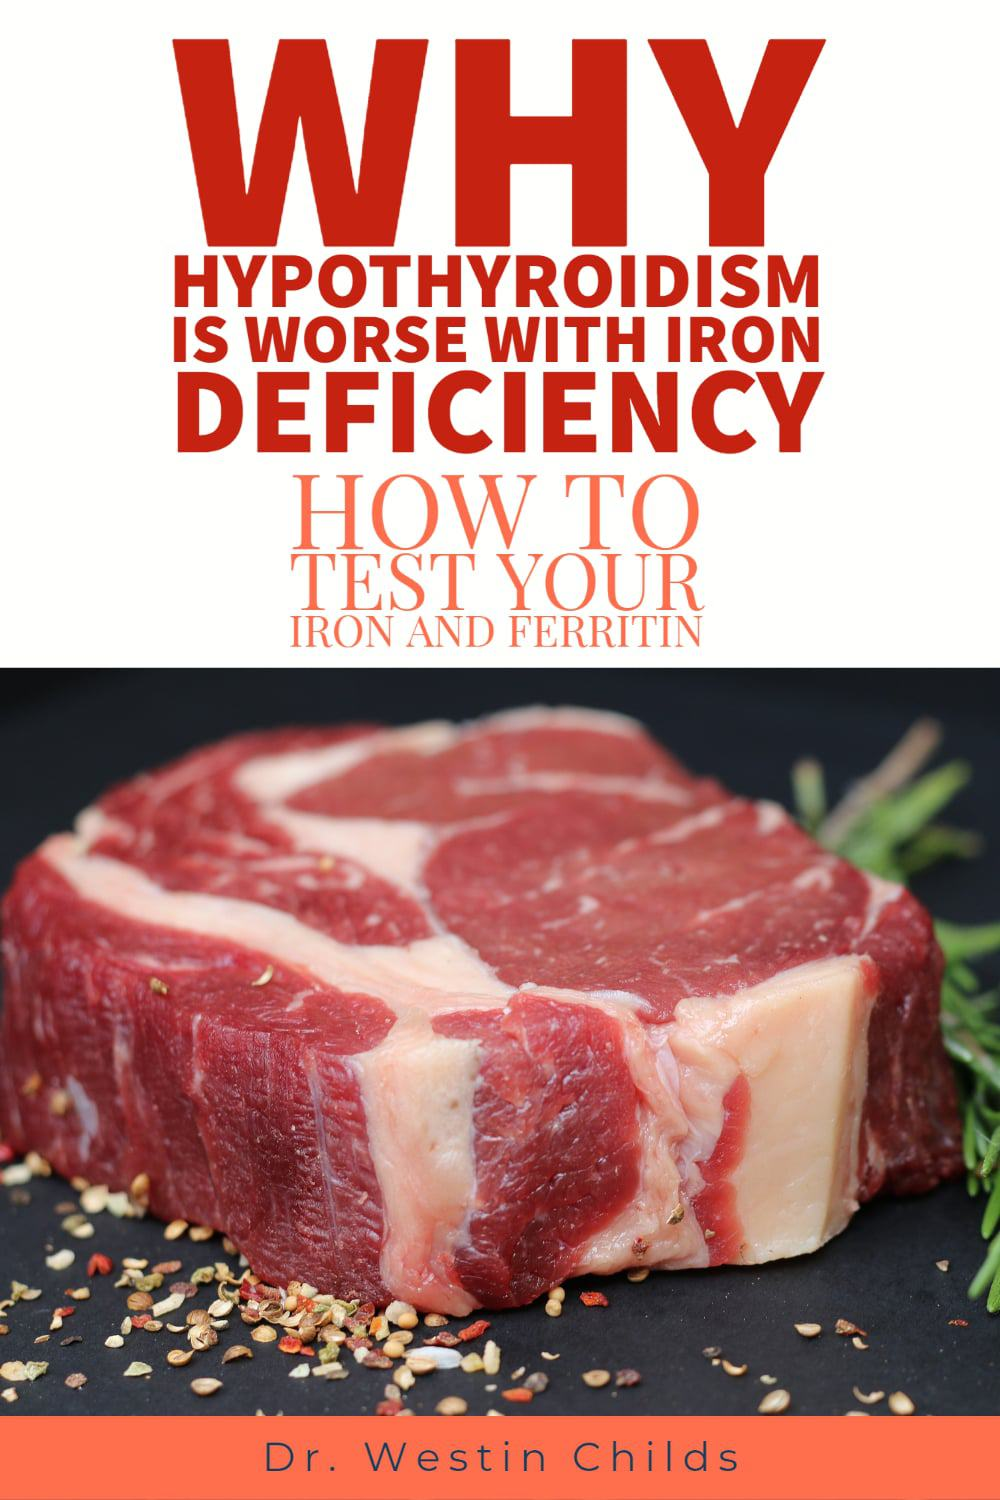 iron deficiency and hypothyroidism